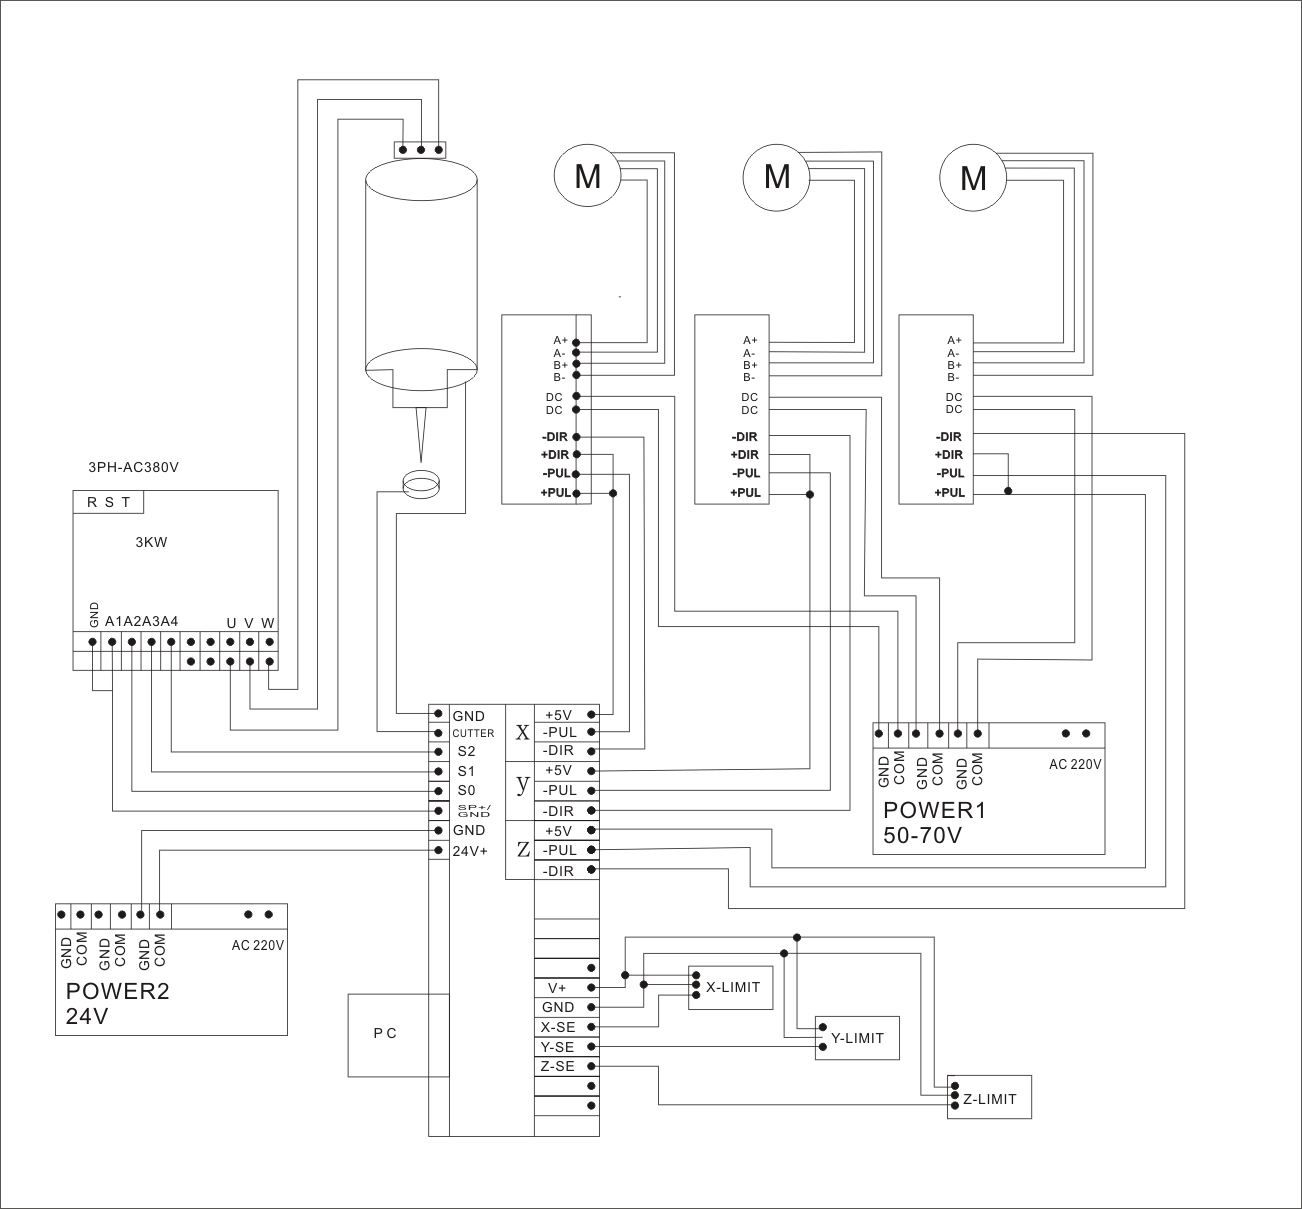 Wiring diagram for Woodworking CNC Router | electronics in